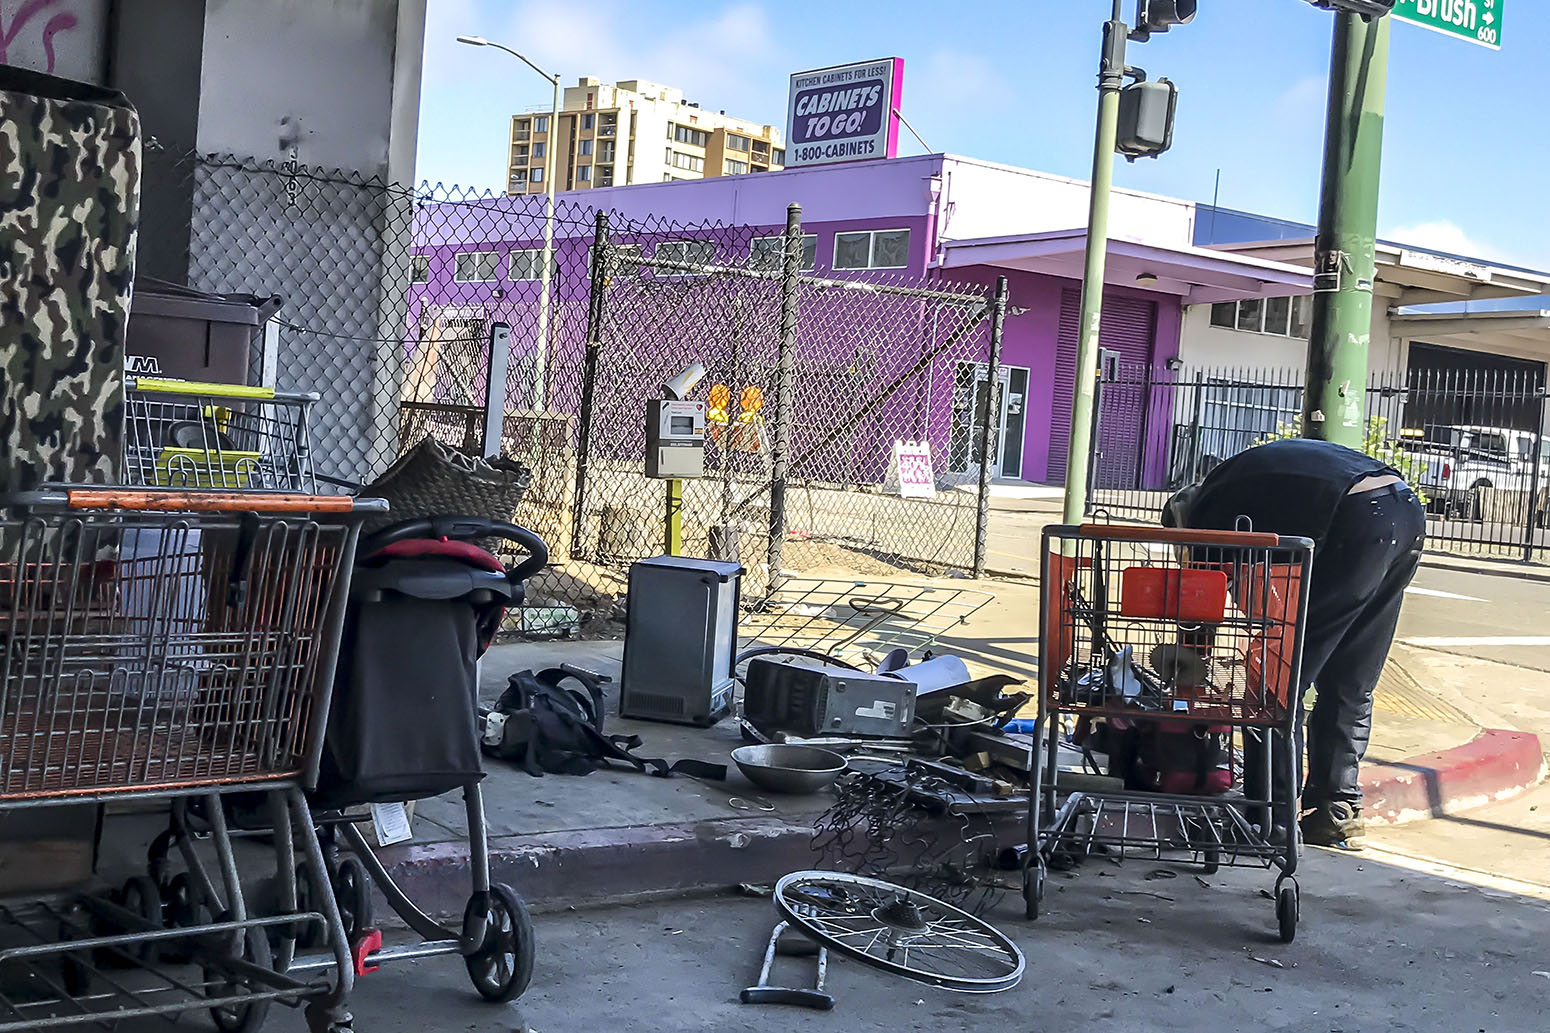 Homeless Community on 6th, Oakland, #1